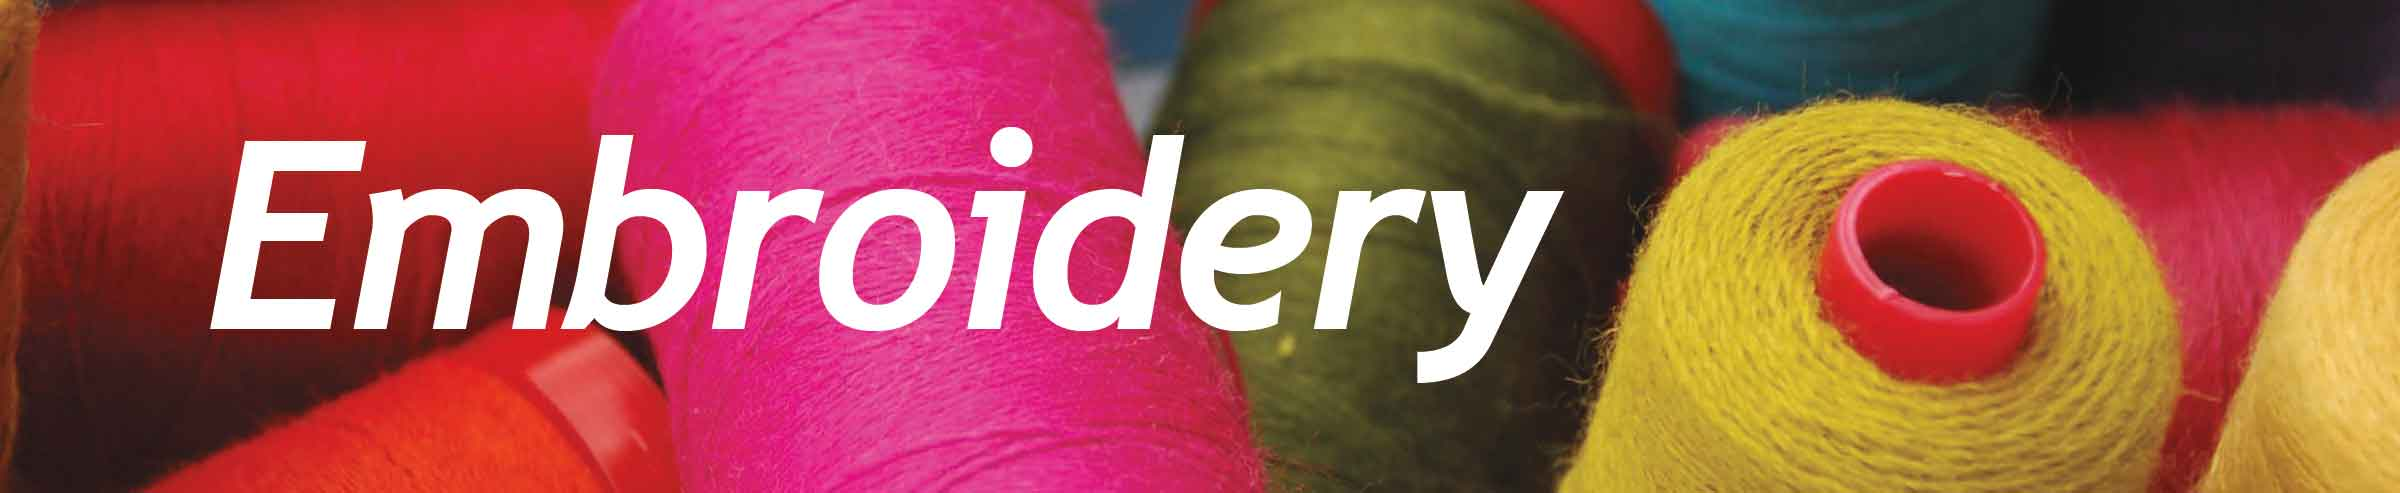 Learn What is Embroidery and Embroidery Tips